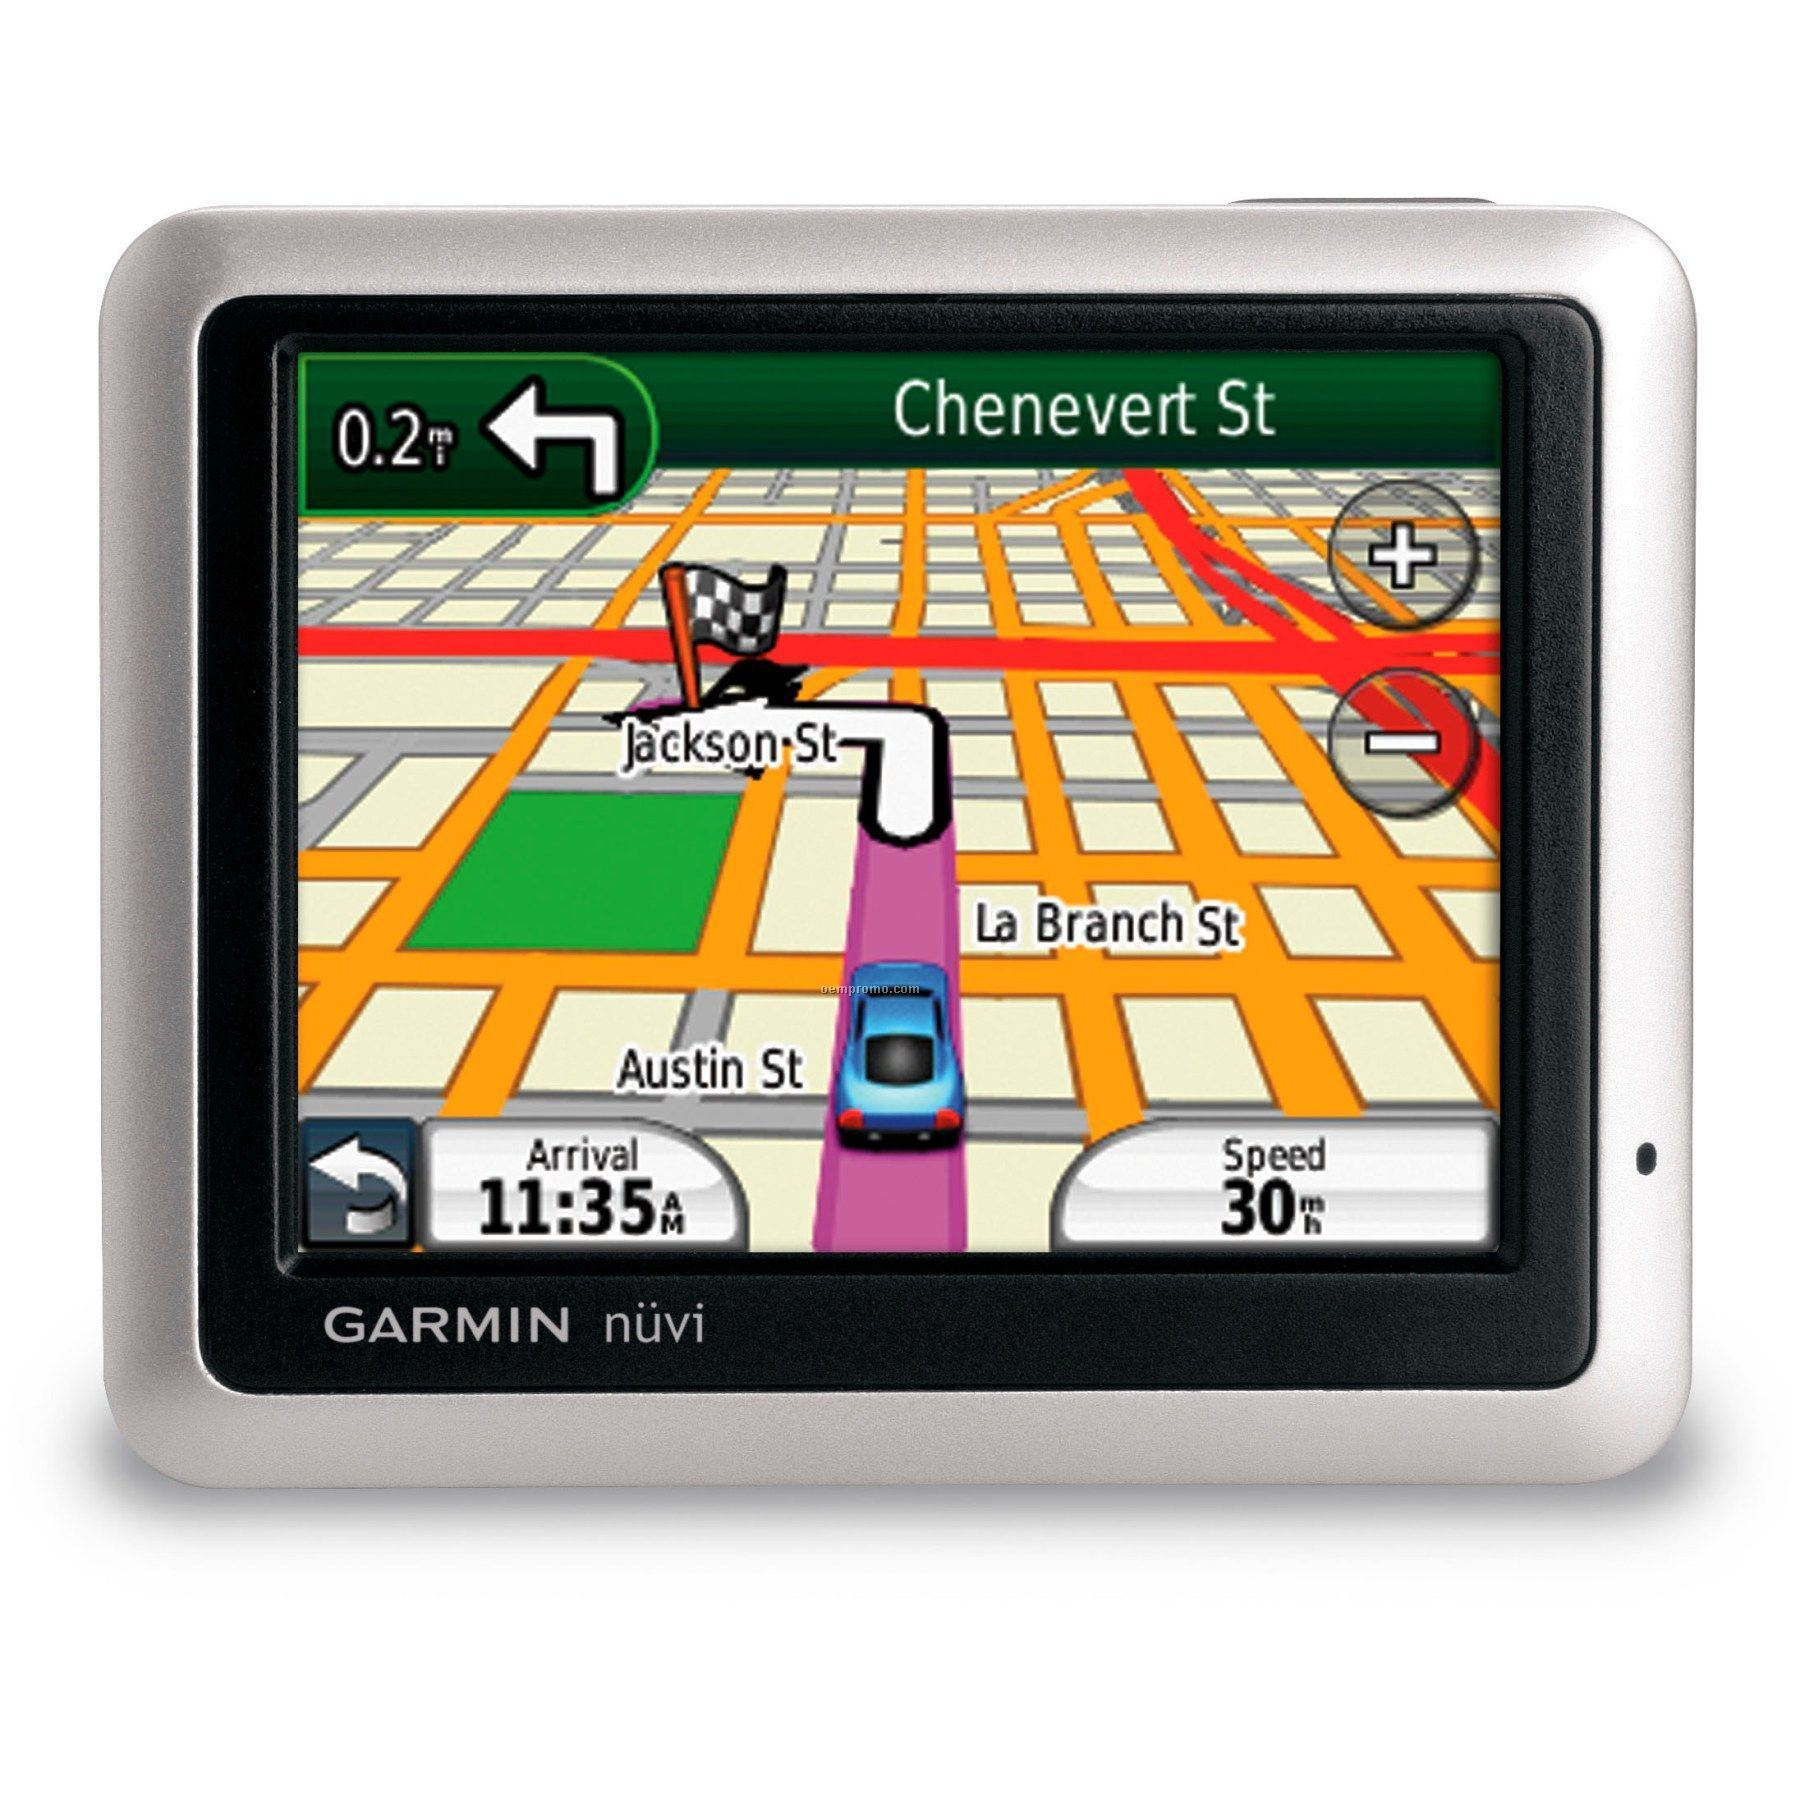 The Best GPS | The Best GPS | Gps navigation, Vehicle tracking